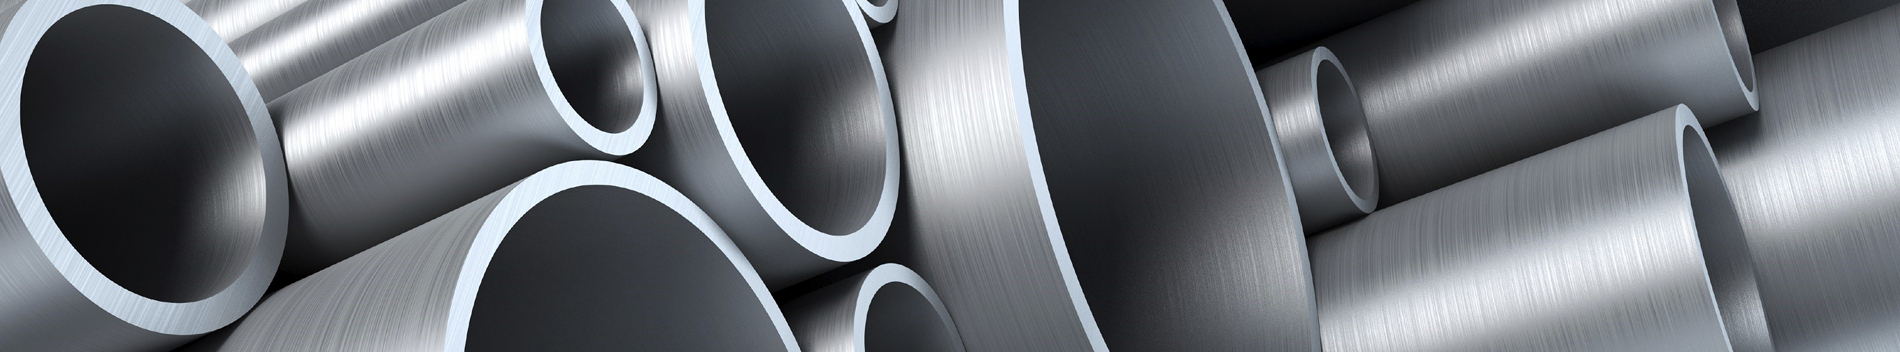 Nickel Alloys, Titanium and Stainless Steels in Costruction